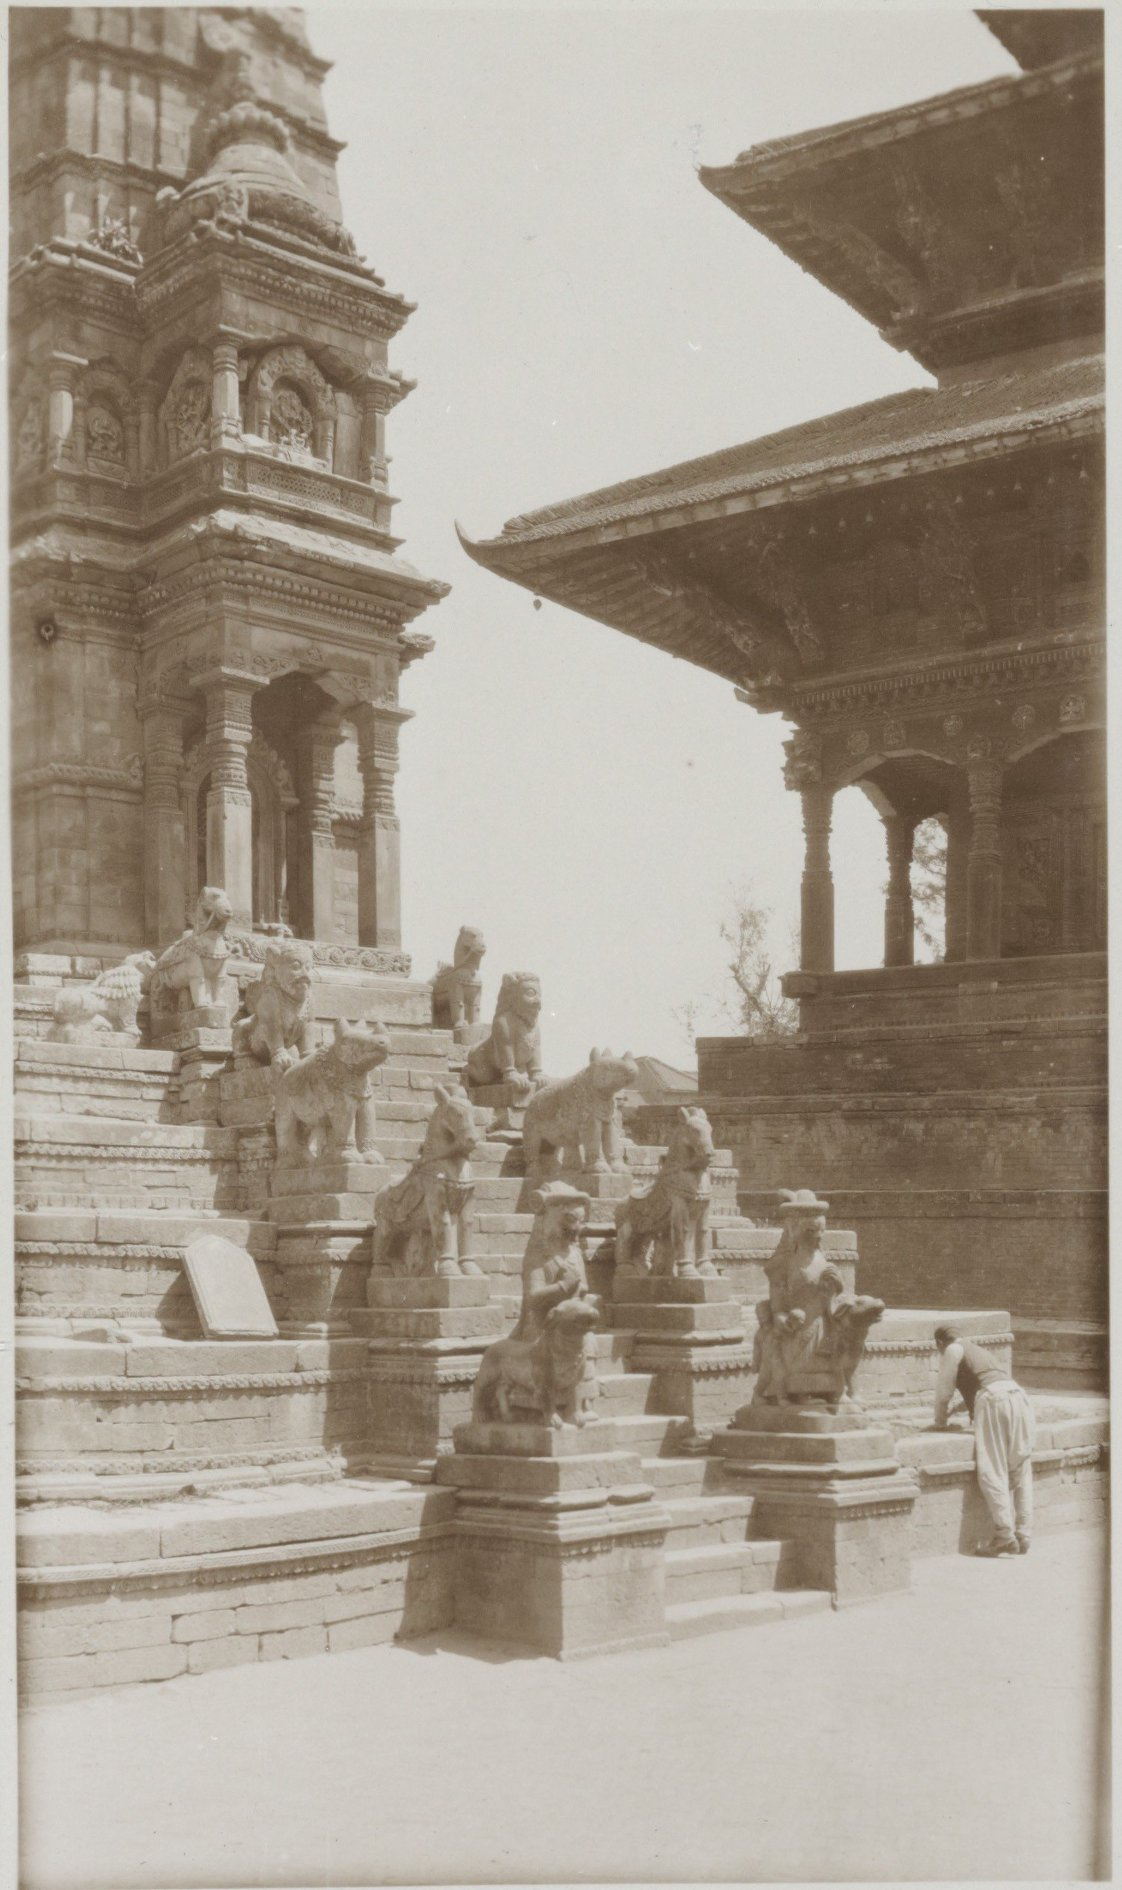 Siddhilaxmi temple staircase 1932-34 image